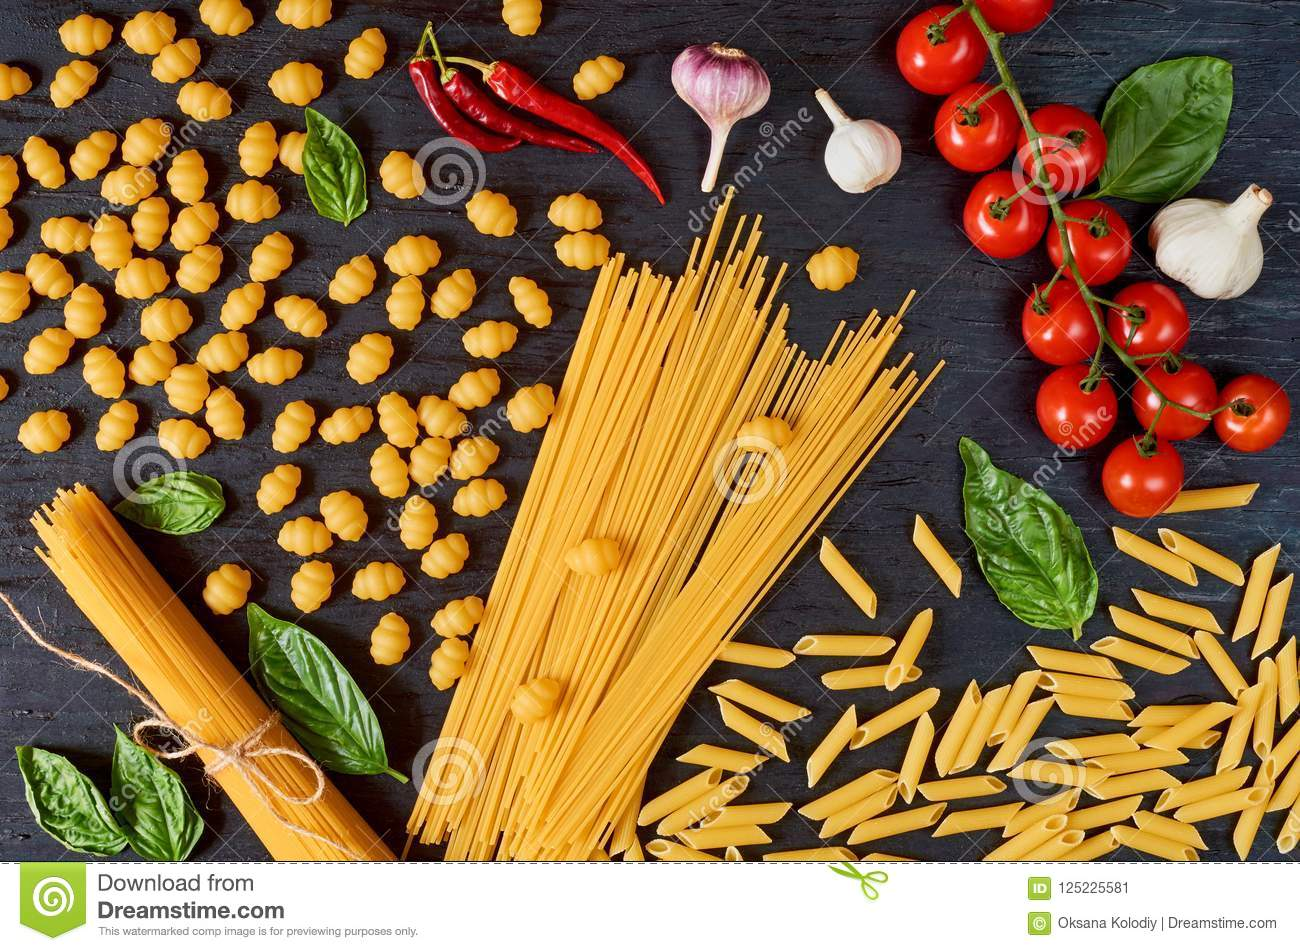 Italian traditional food, spices and ingredients for cooking as basil, cherry tomatoes, chili pepper, garlic and various pasta